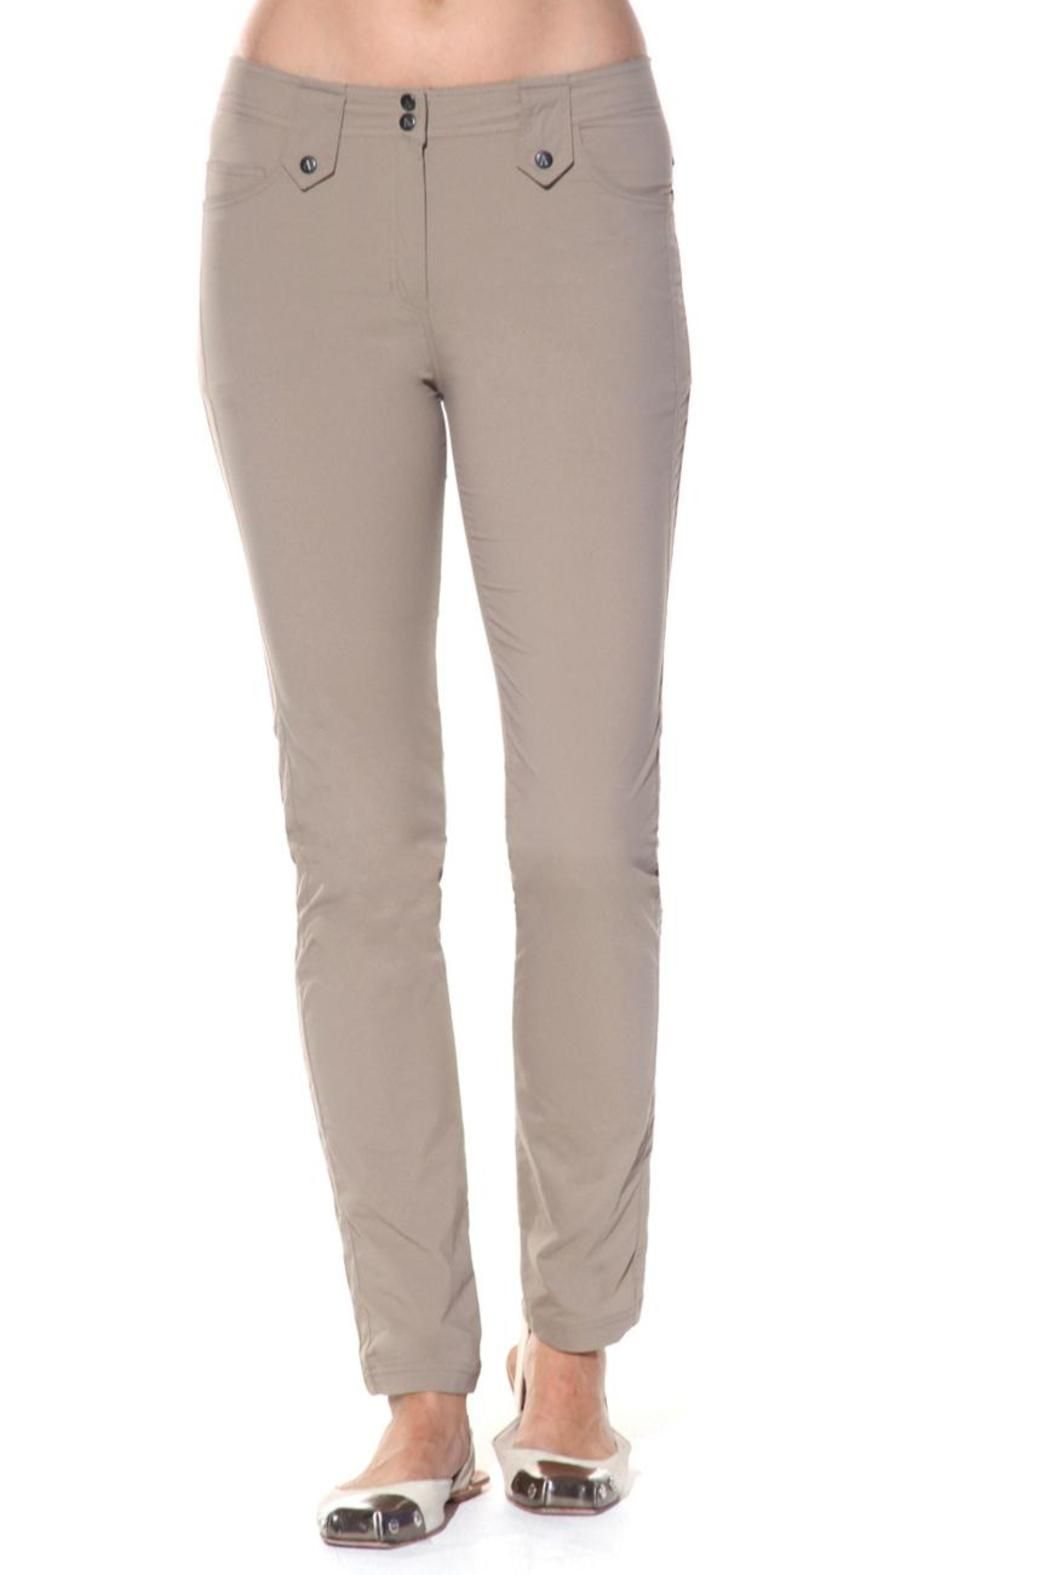 Old Fashioned Anatomie Skyler Skinny Pants Collection - Human ...